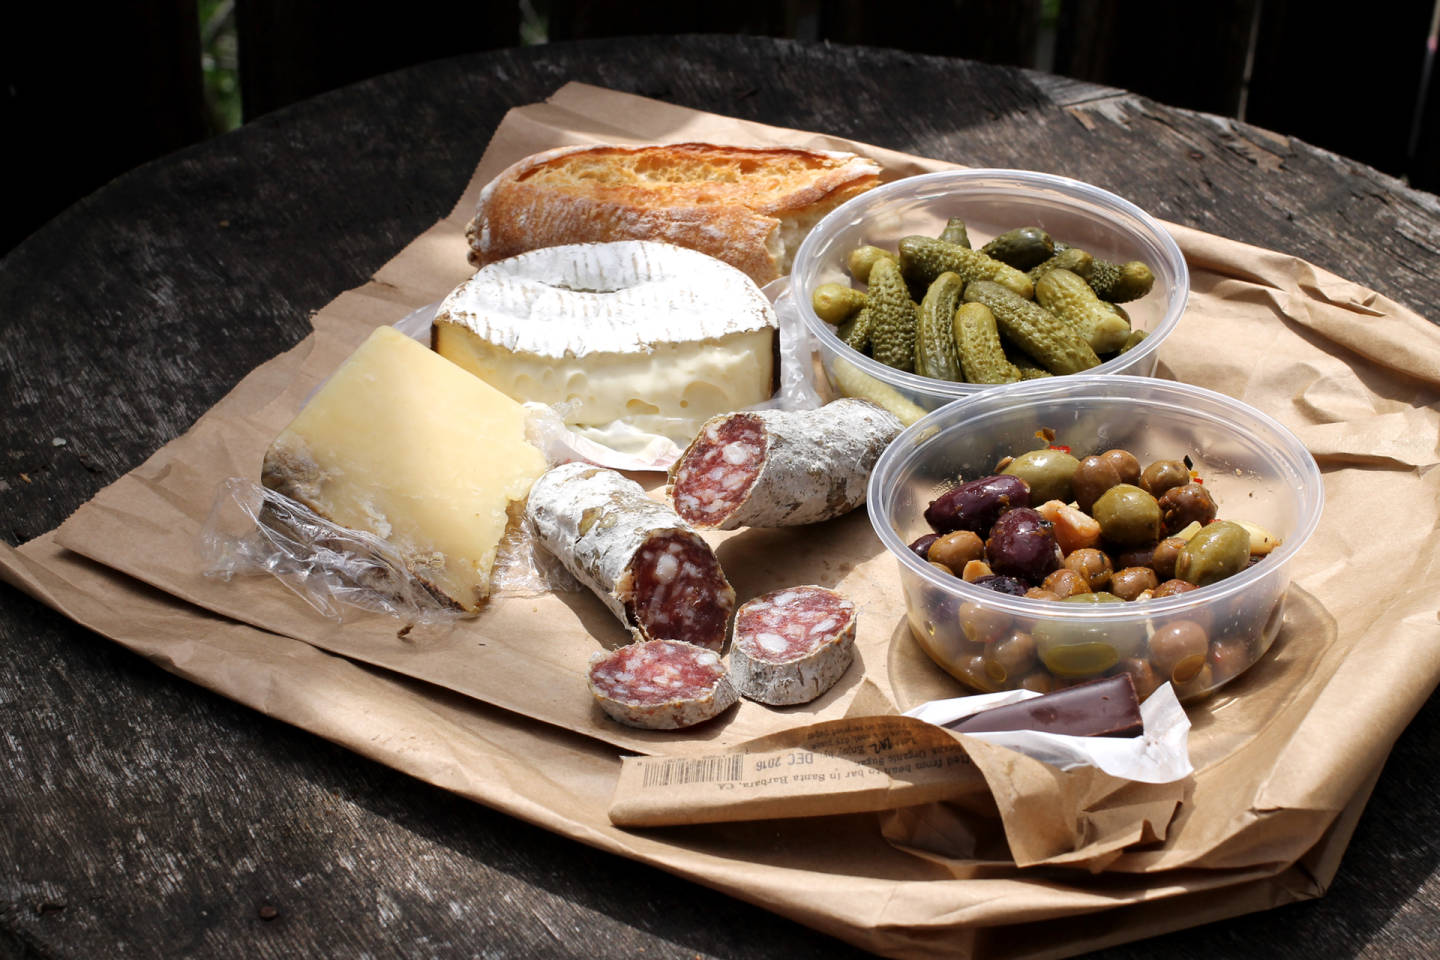 A picnic spread from Market Hall's Pasta Shop. Kate Williams